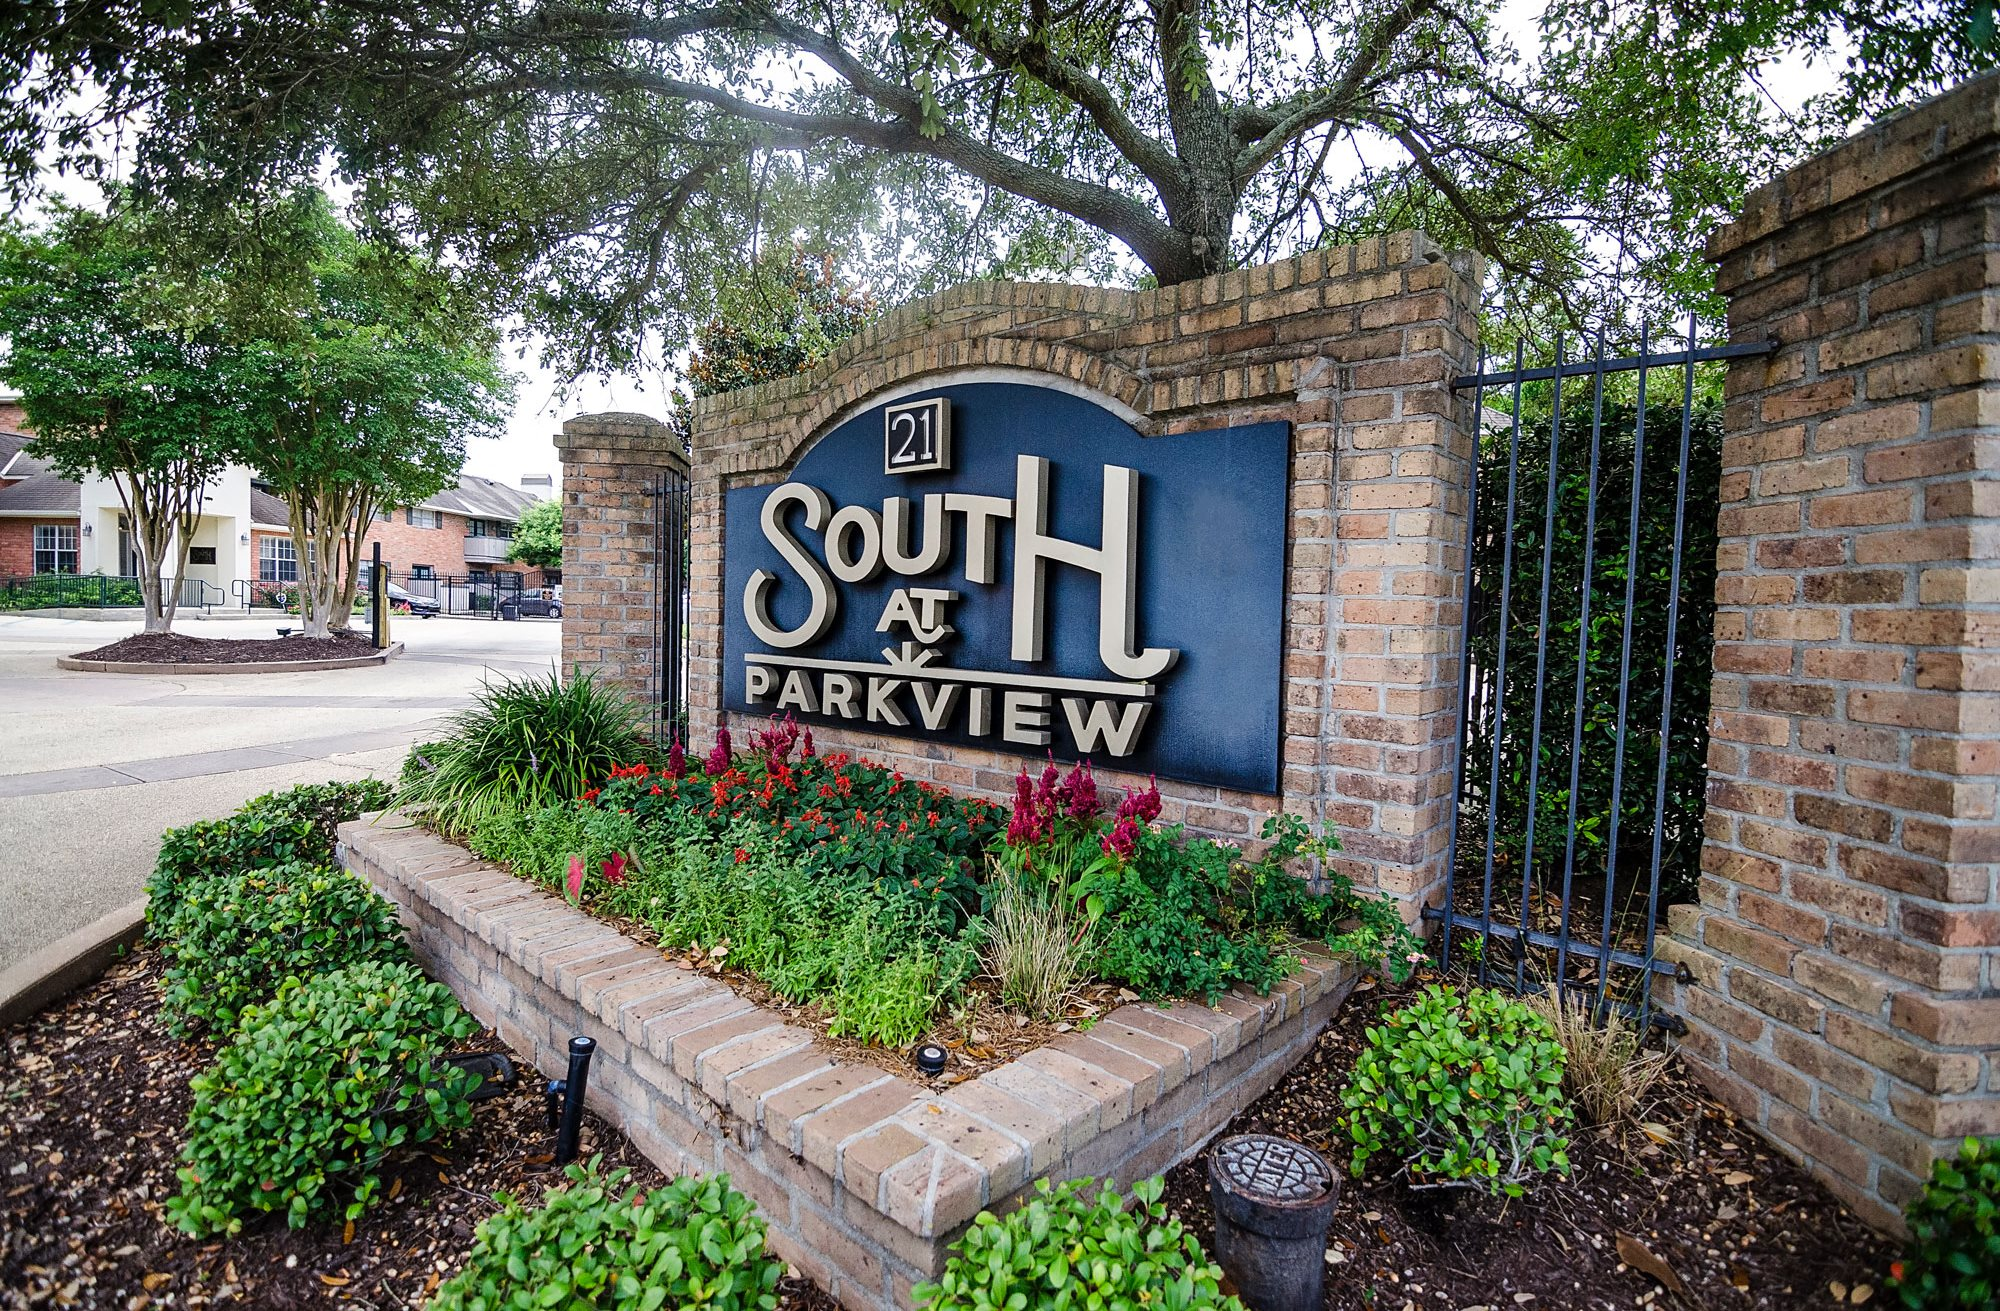 Property sign for 21 South at Parkview Apartments in Baton Rouge, LA